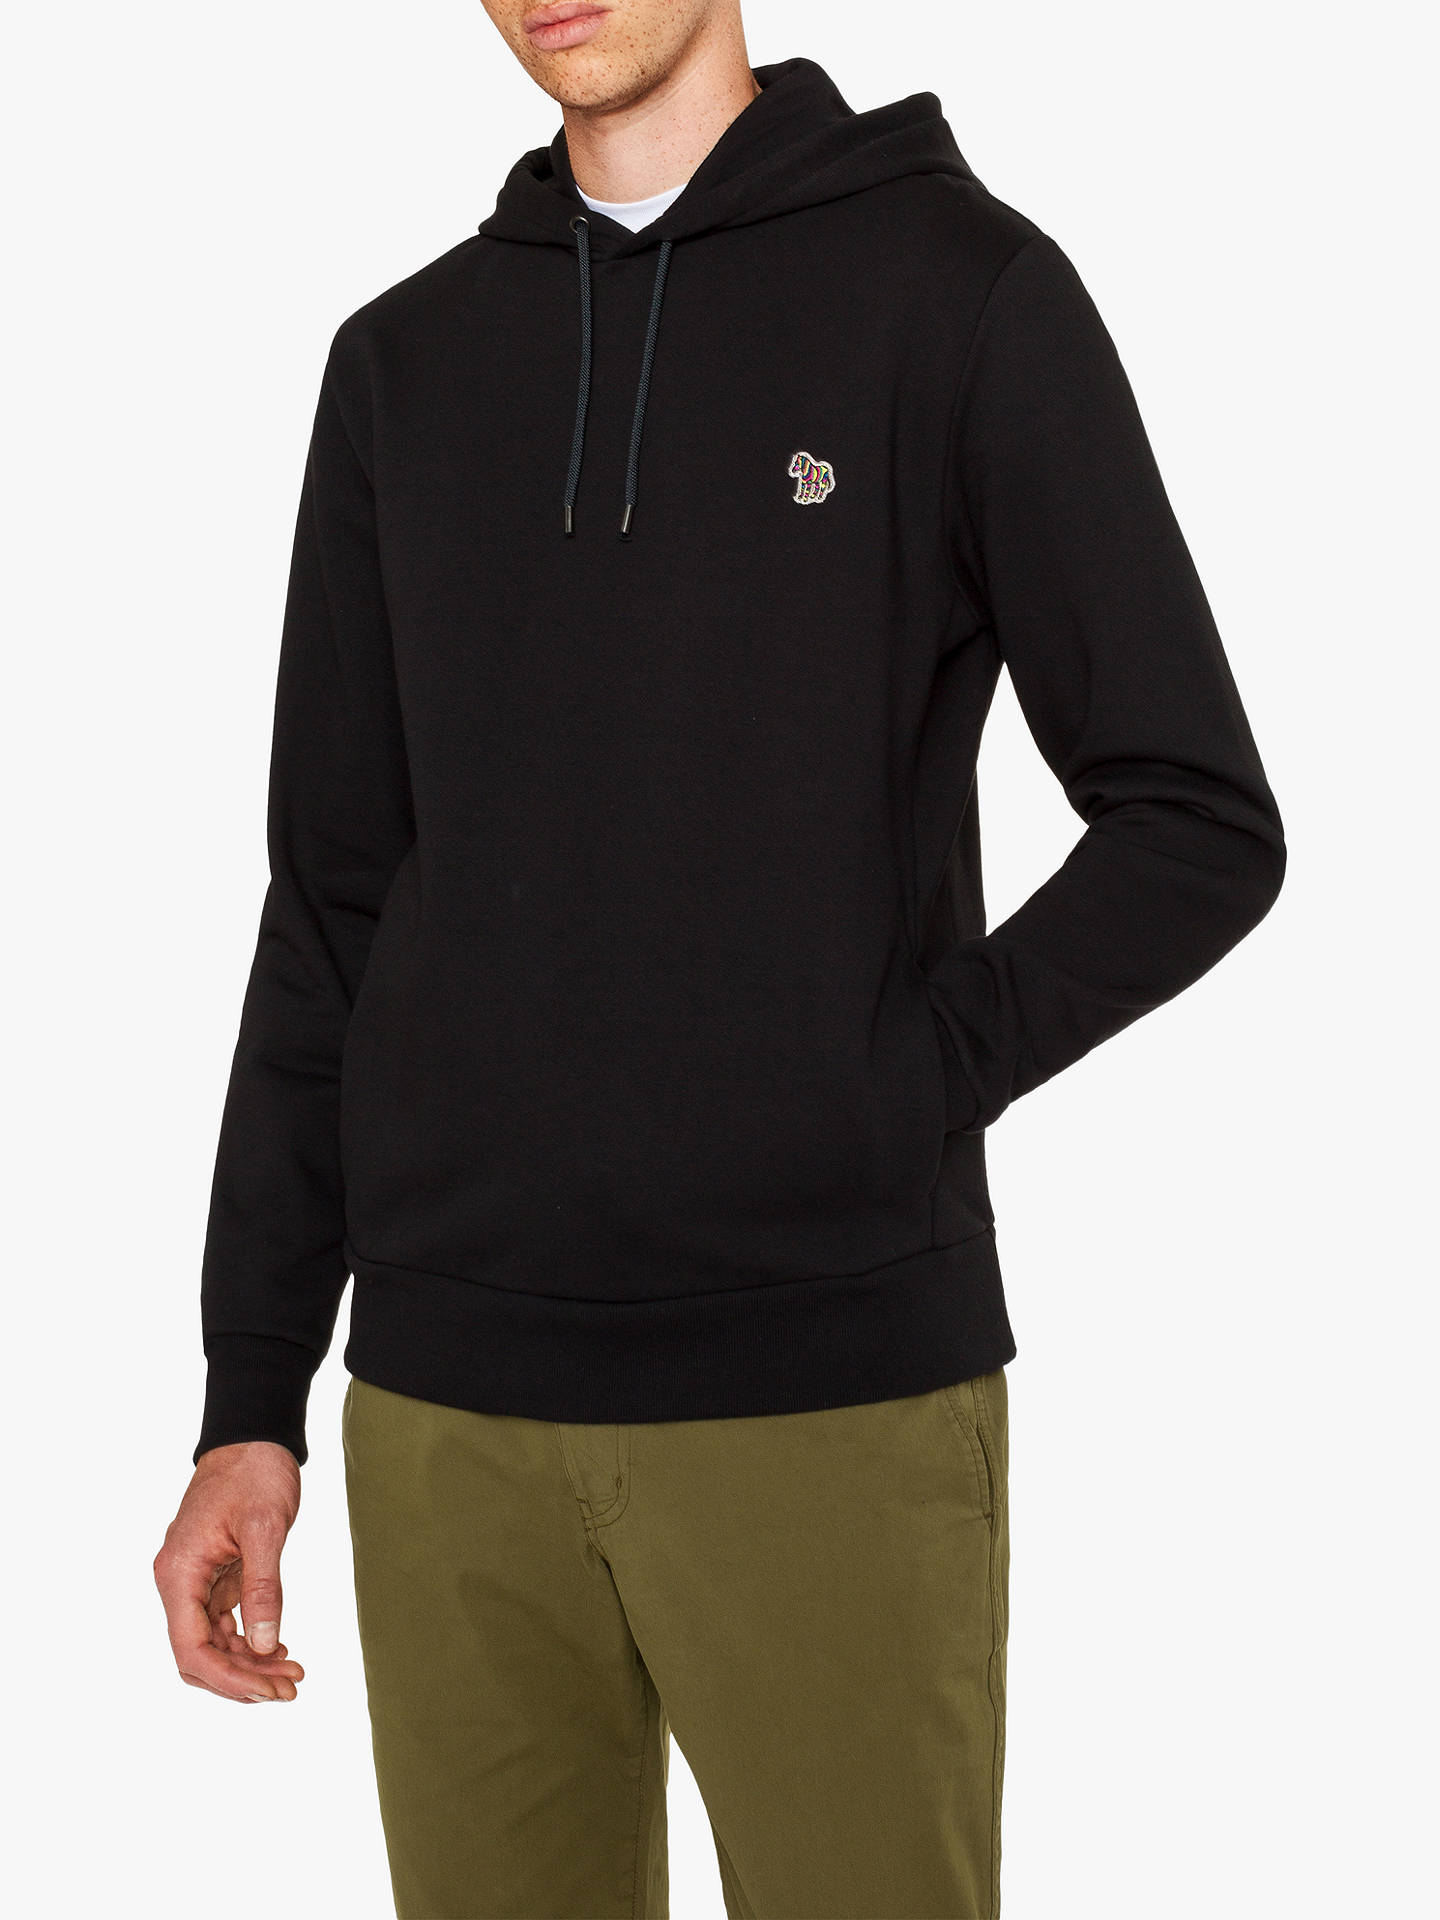 Buy PS Paul Smith Zebra Logo Hooded Jersey Top, Navy, M Online at johnlewis.com